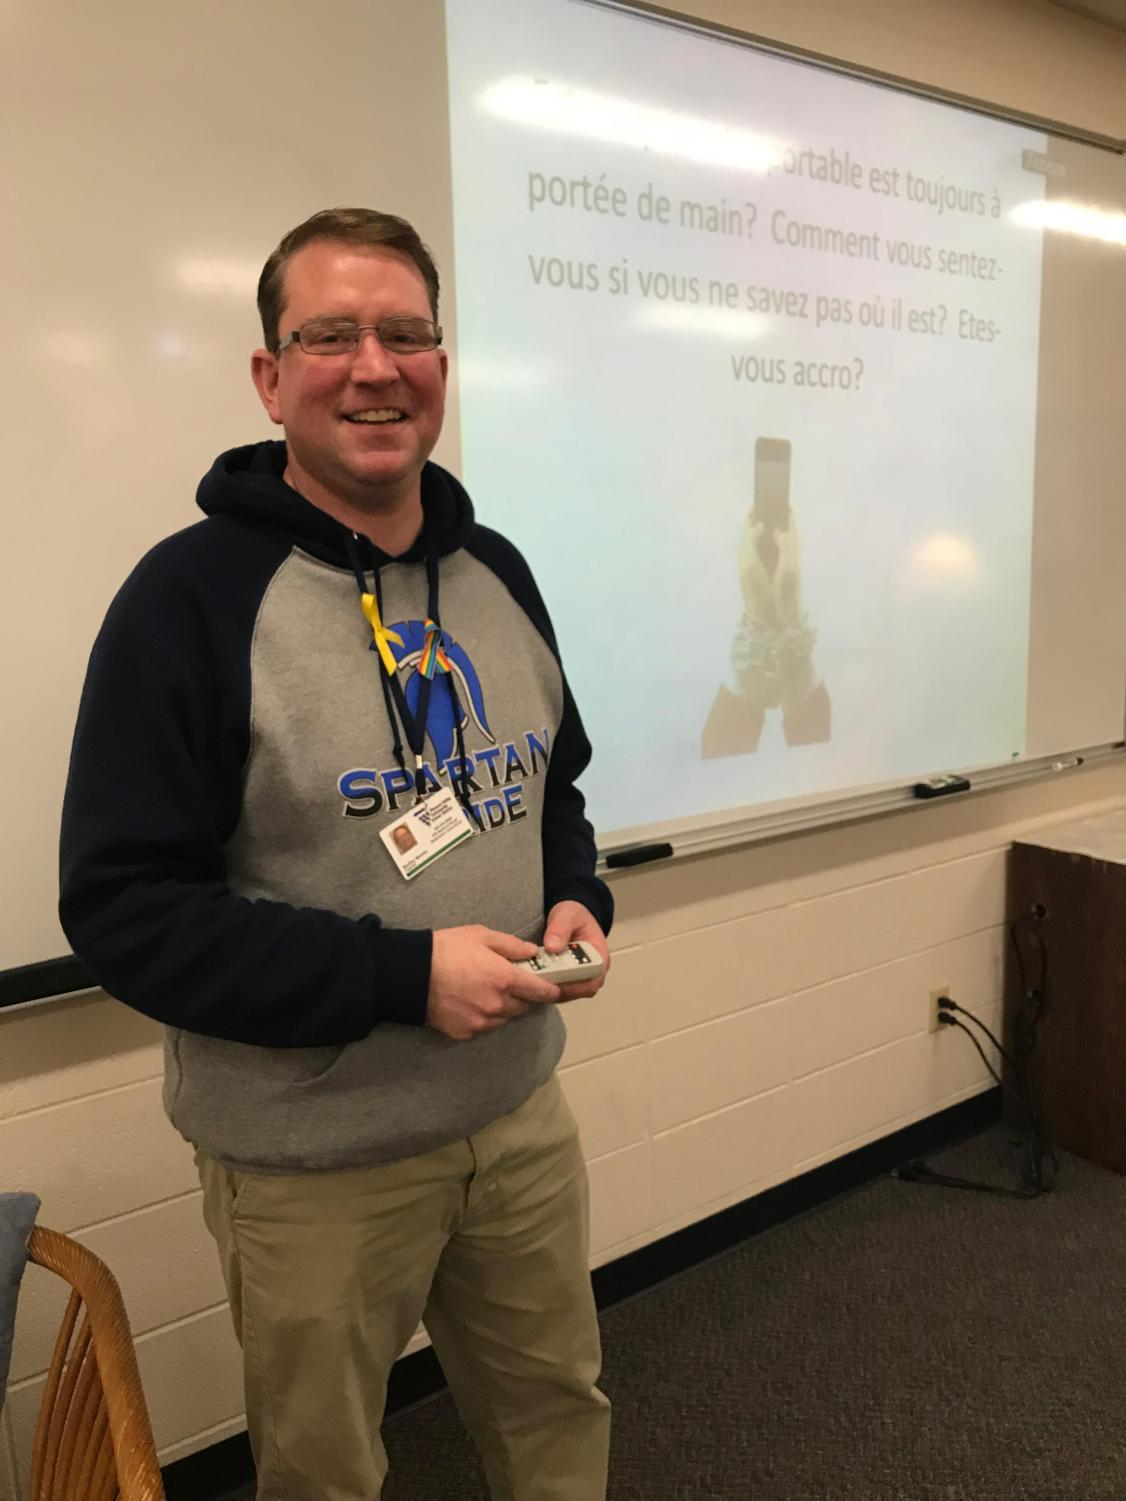 French teacher Mr. Meicke is back teaching this week after having a substitute last Friday